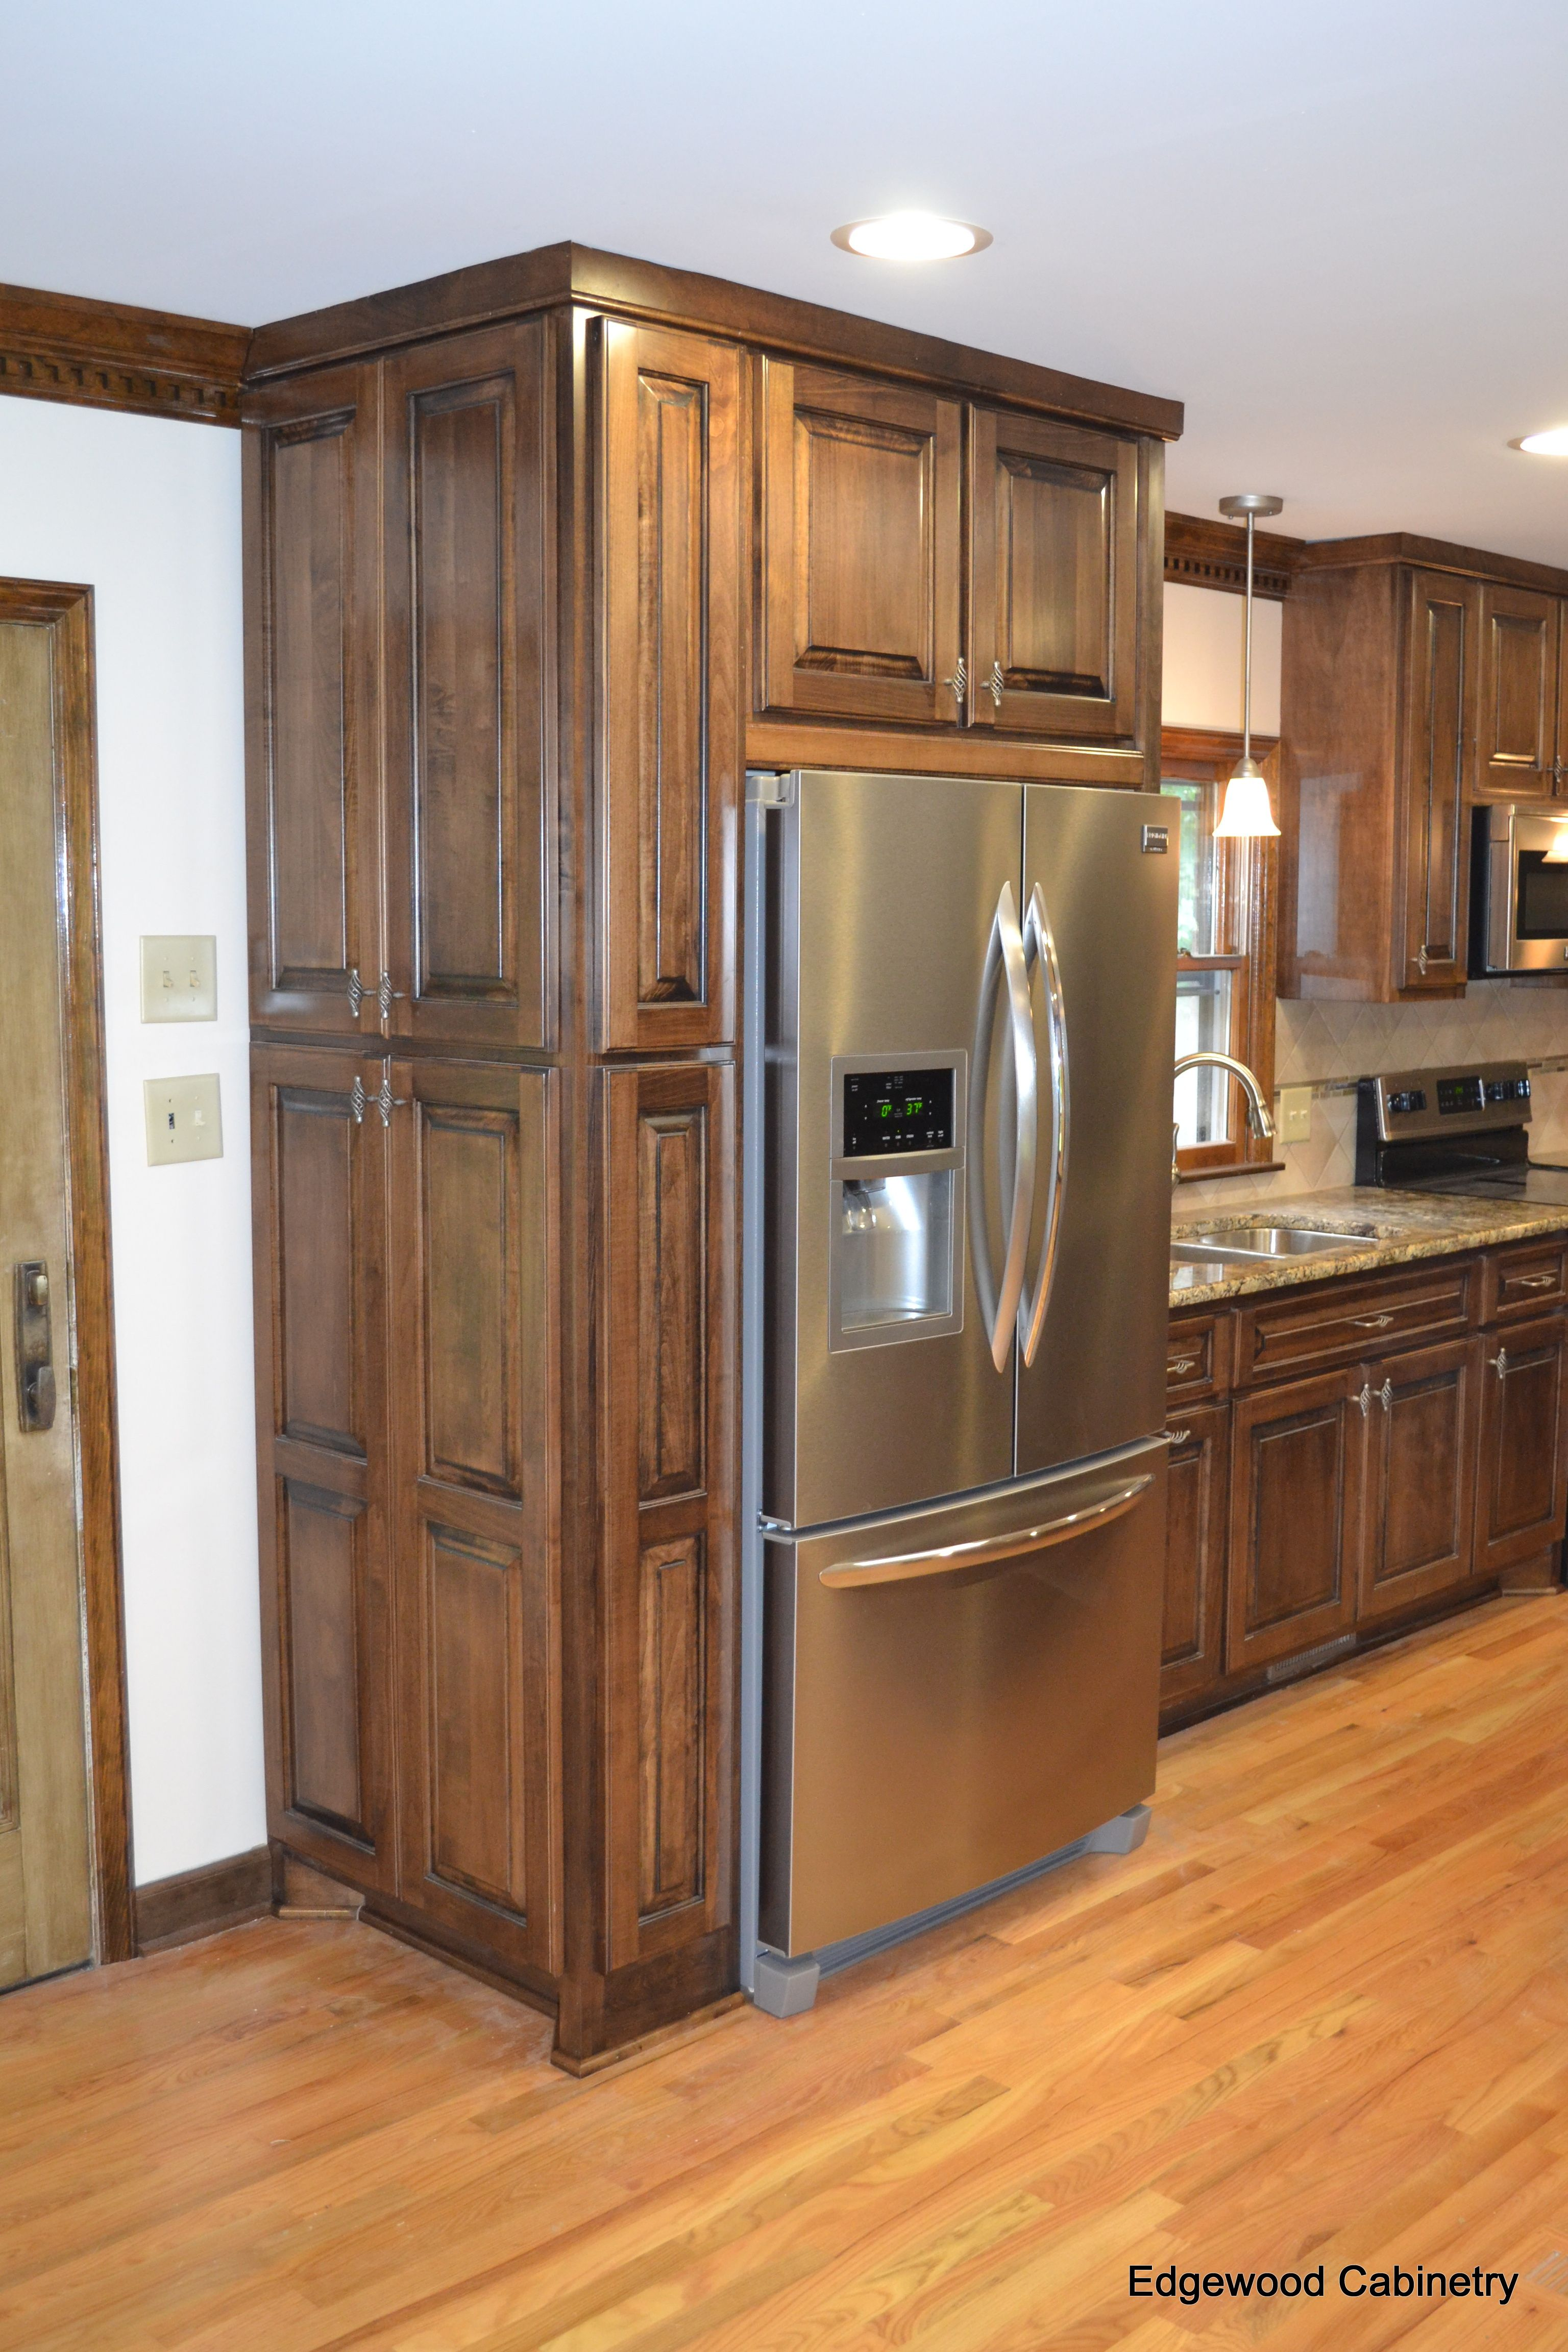 staining kitchen cabinets sink paint custom maple finished in a walnut stain and then